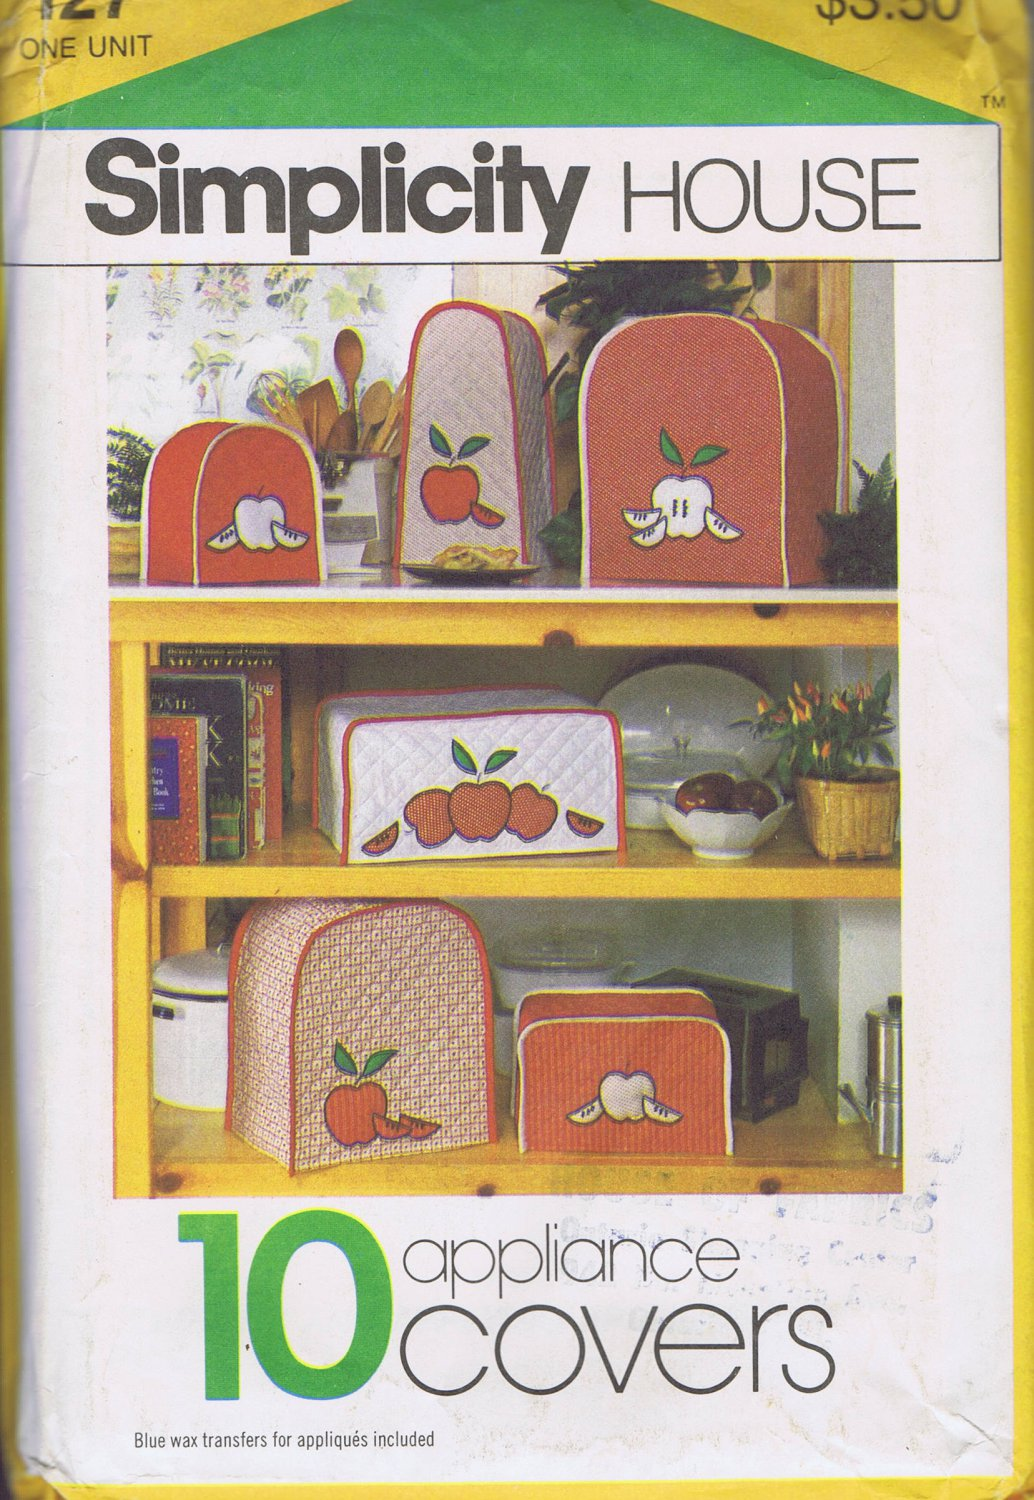 127 Simplicity -- Kitchen Appliance Covers *